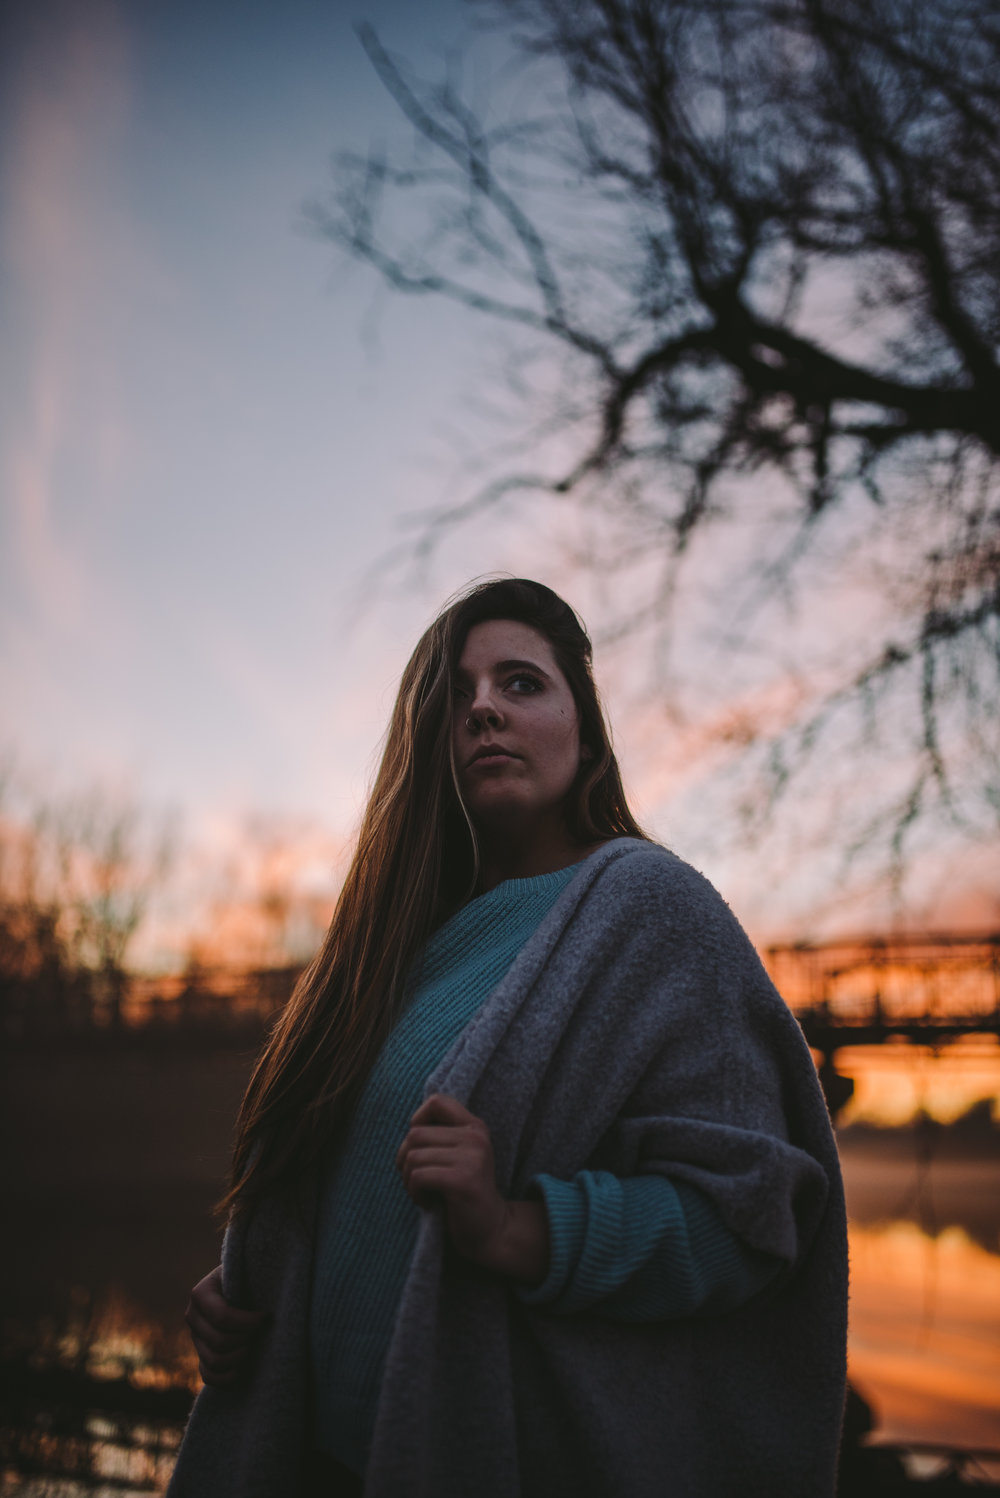 Sunset_IndianapolisIndiana_January2018_Senior Photography In Tempe_ArizonaSeniorPhotographer_SamanthaRosePhotography_final_-6.jpg